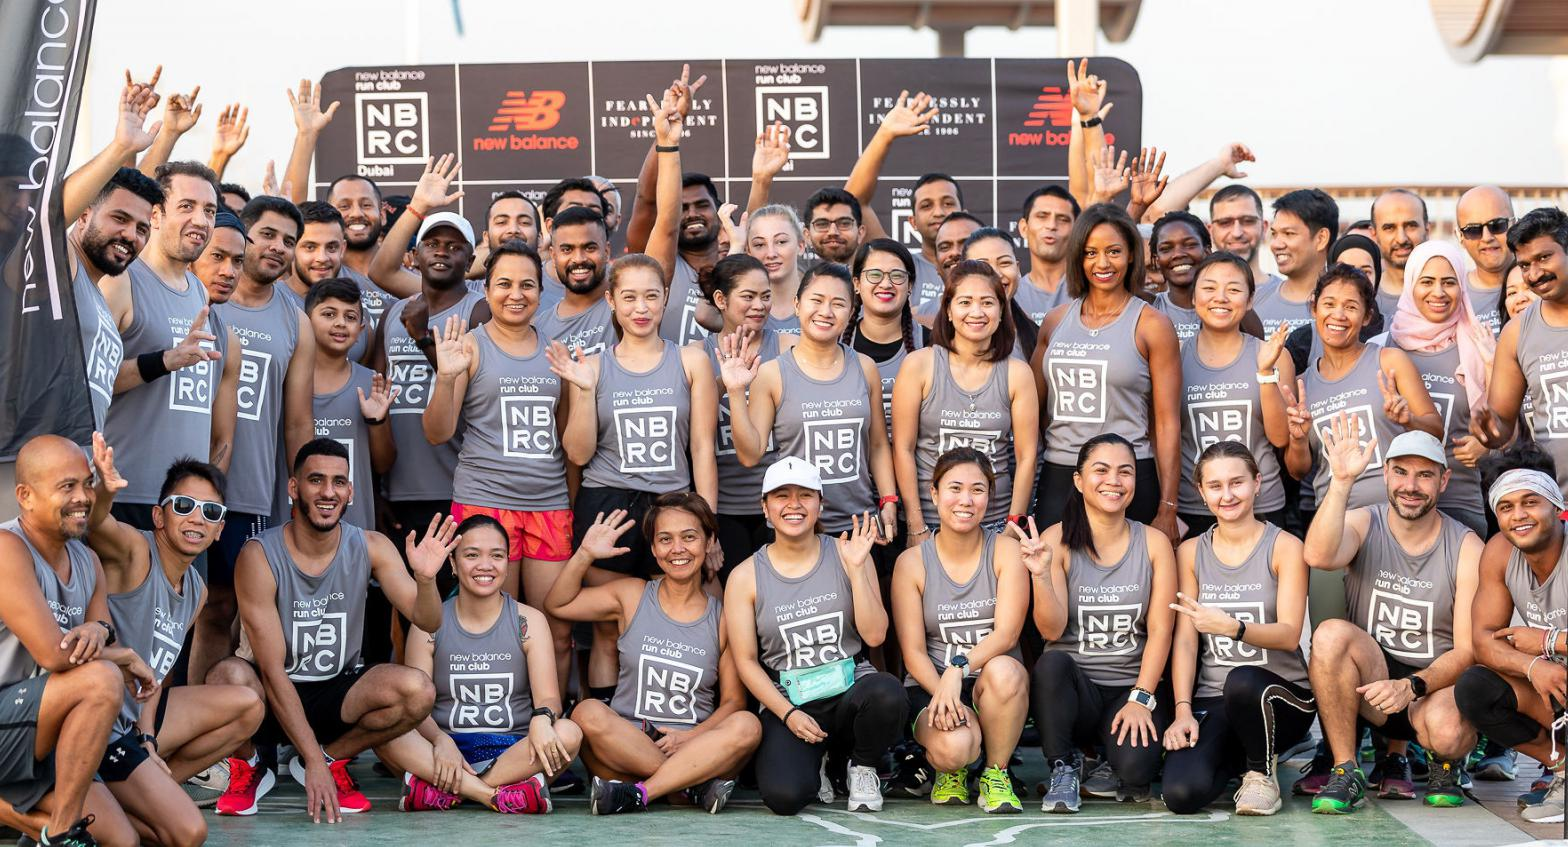 New Balance Run Club - 2 October